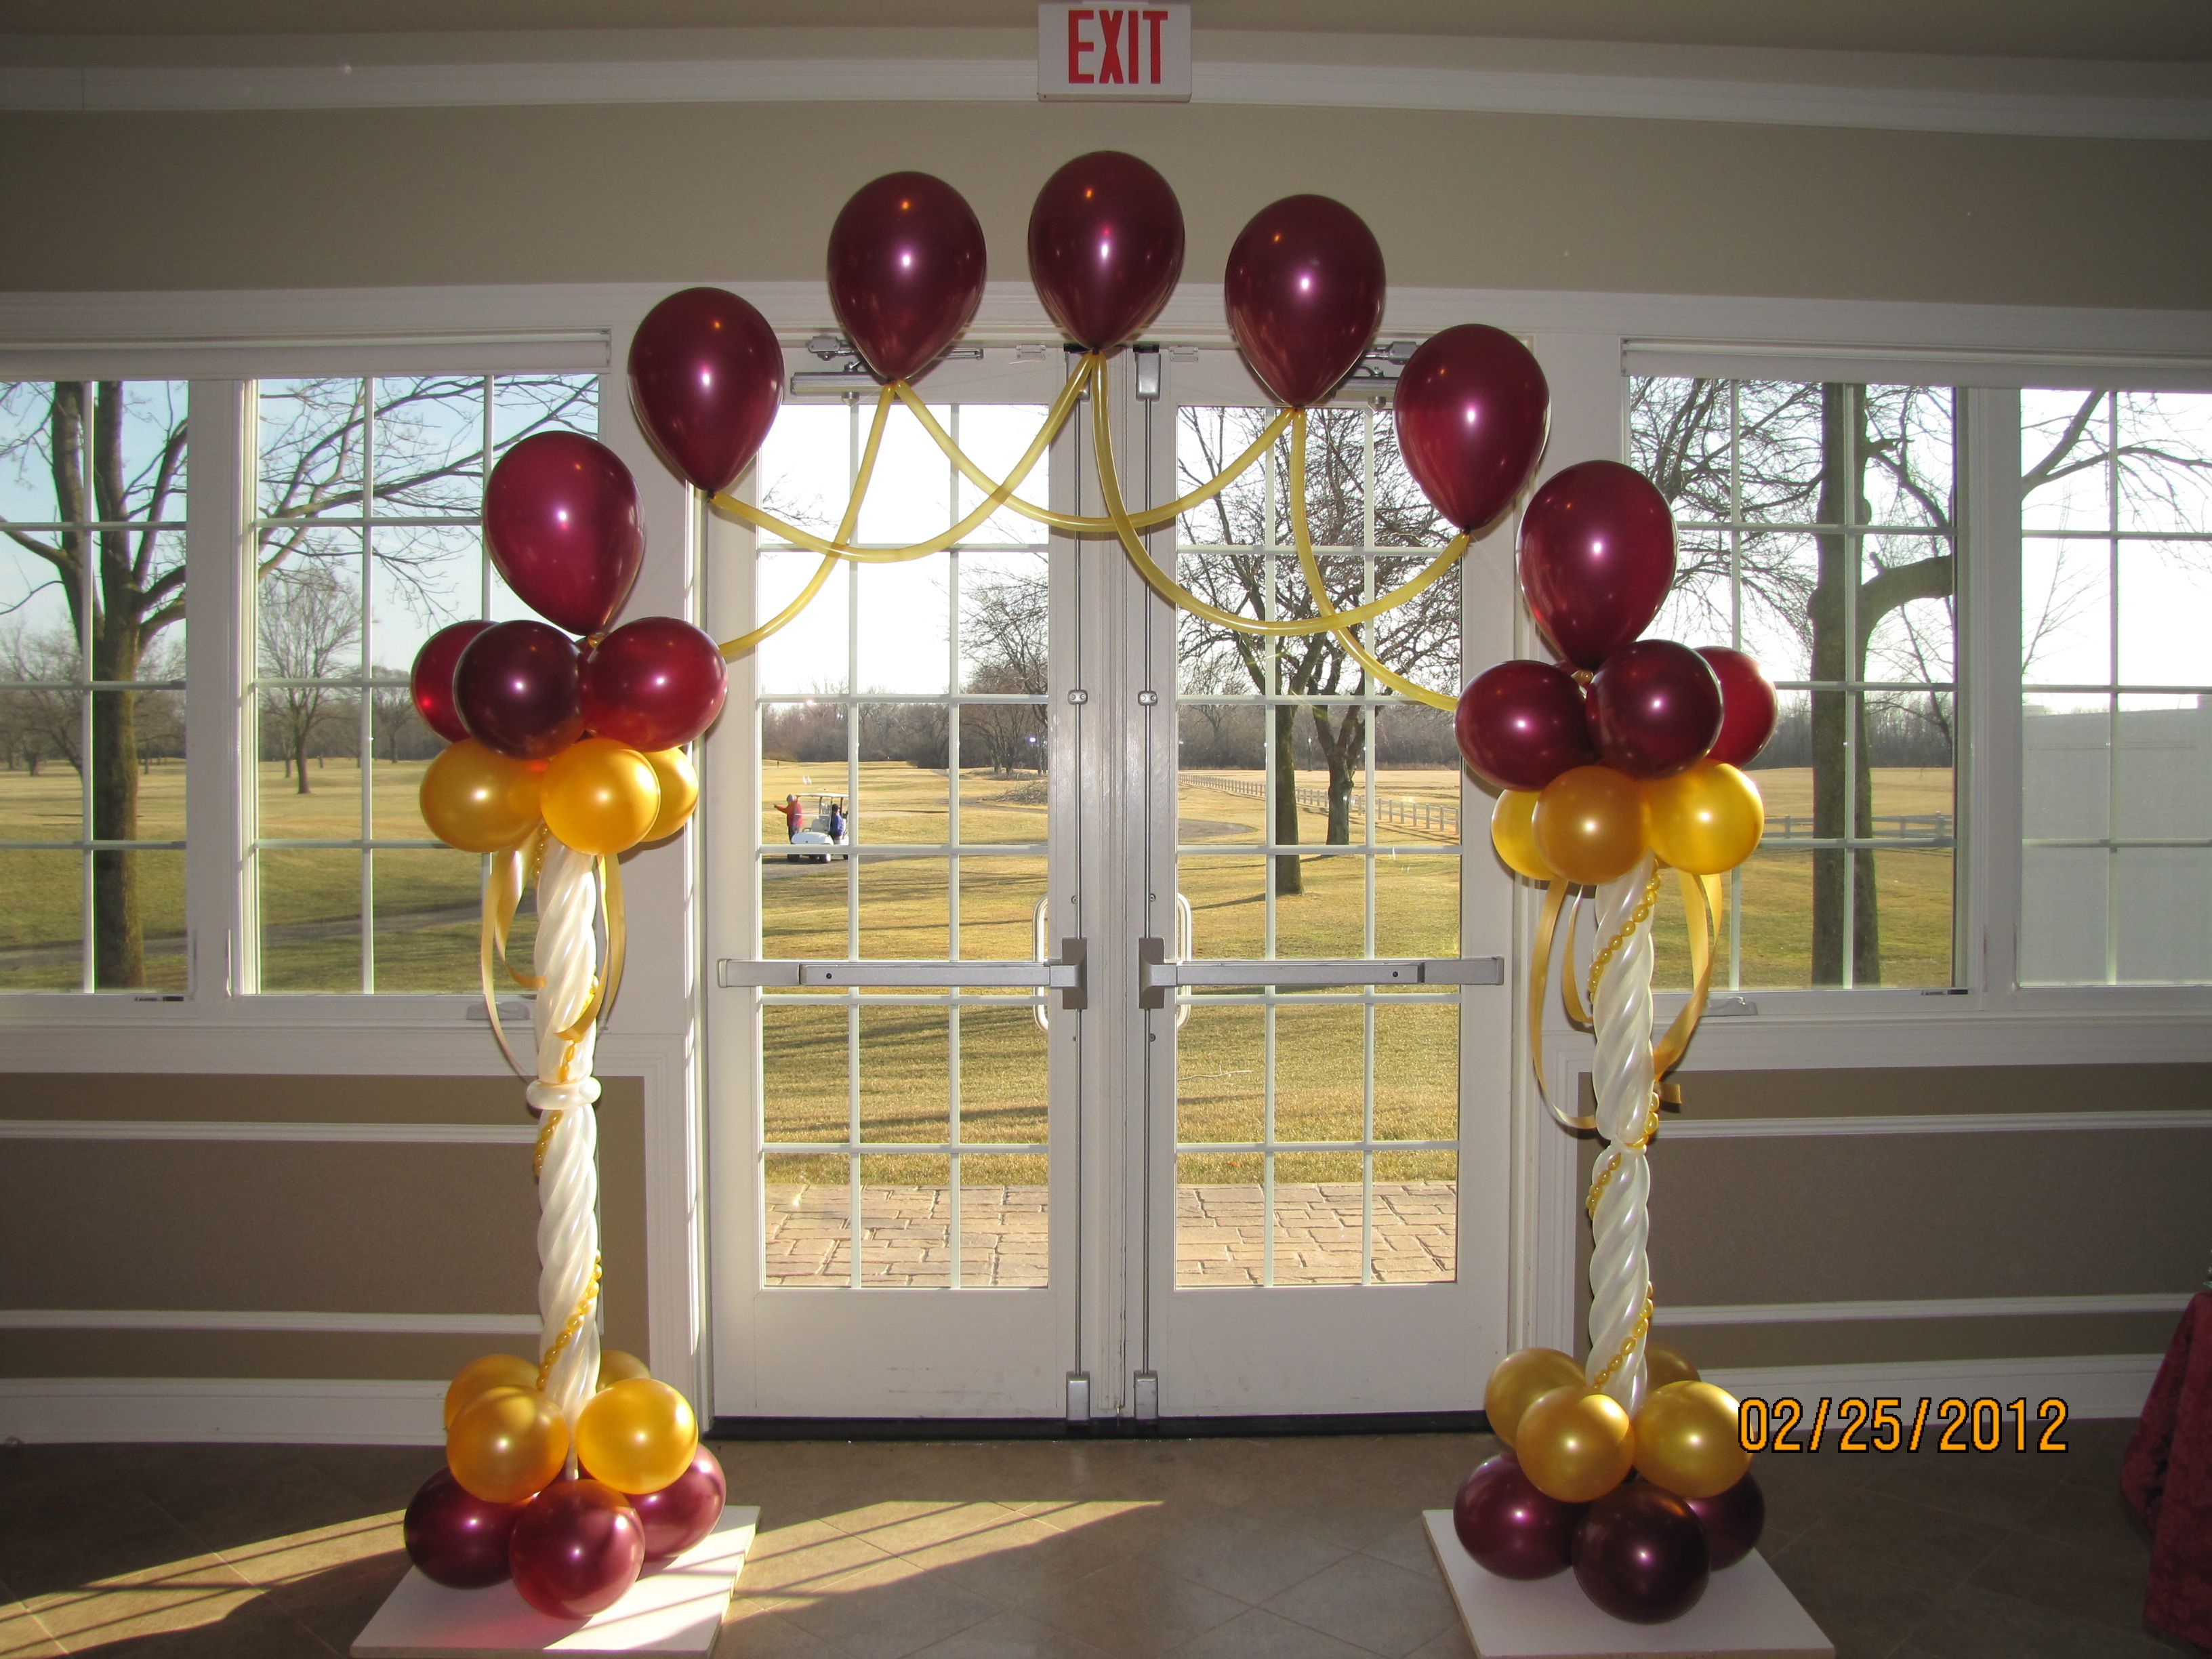 Balloon arch for wedding - Weddings Balloon Arch